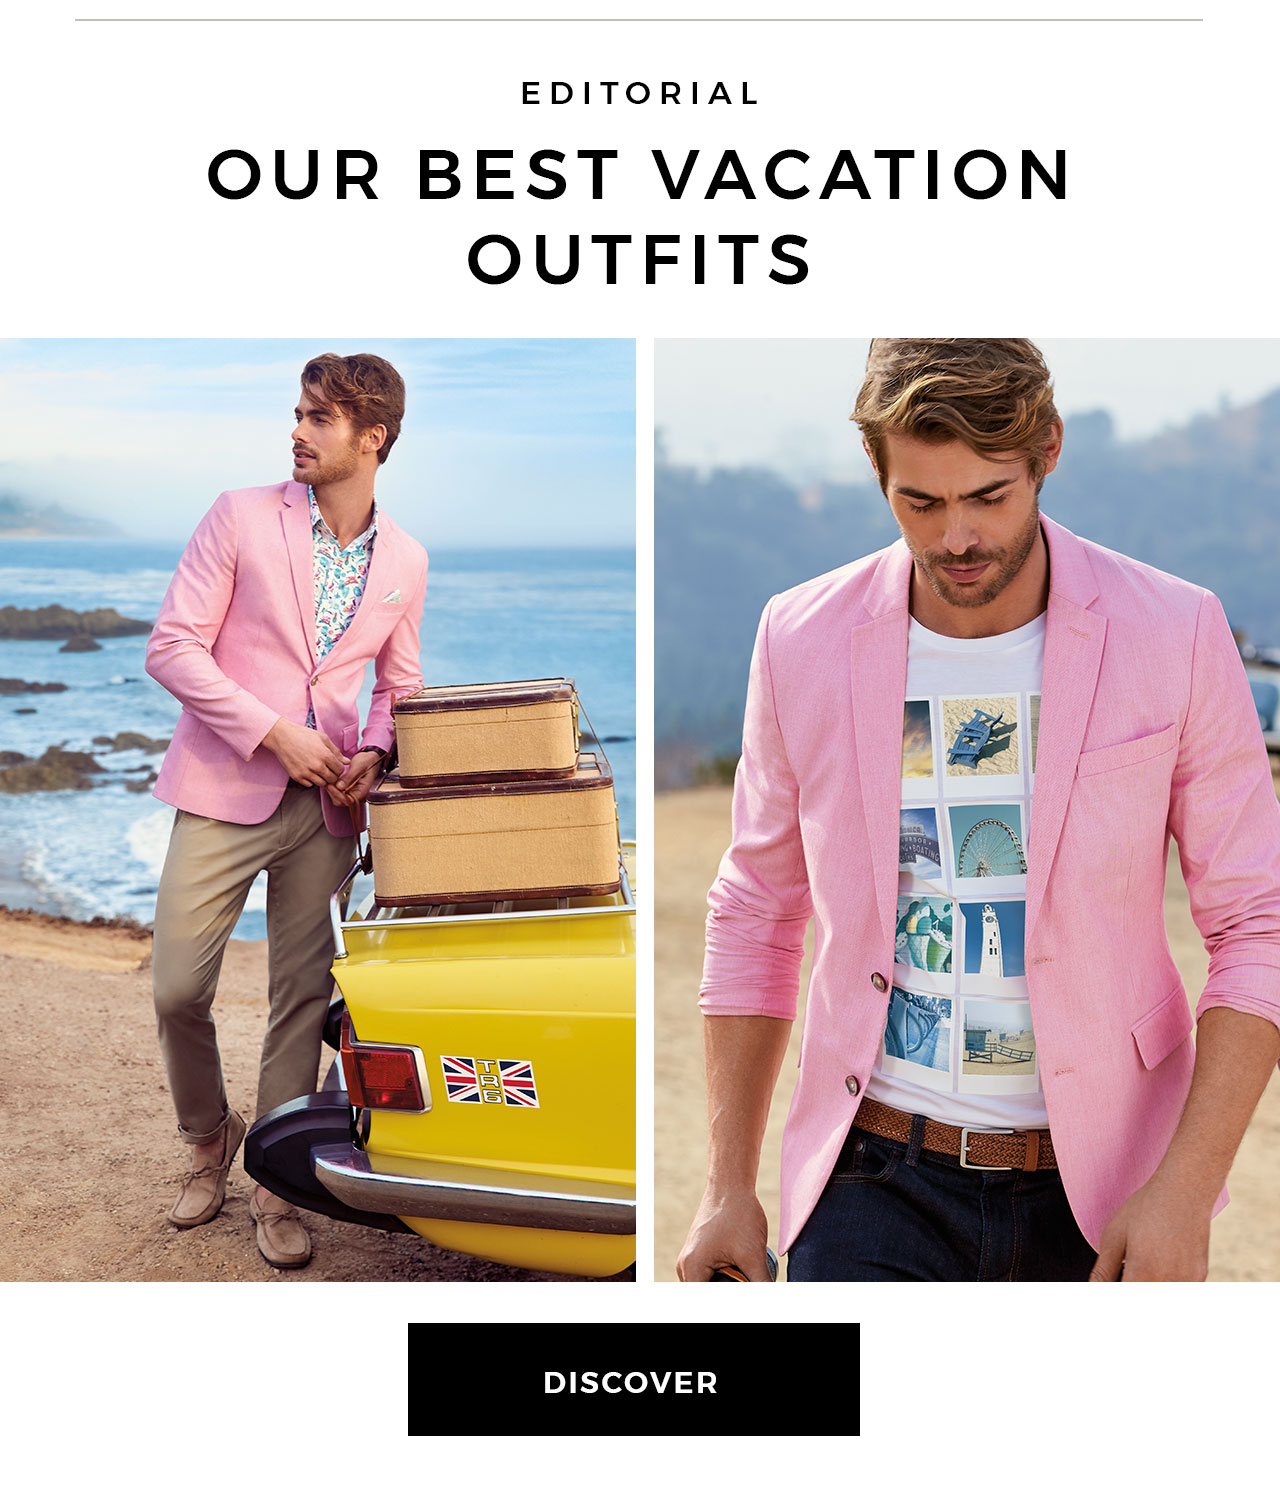 Our Best Vacation Outfits